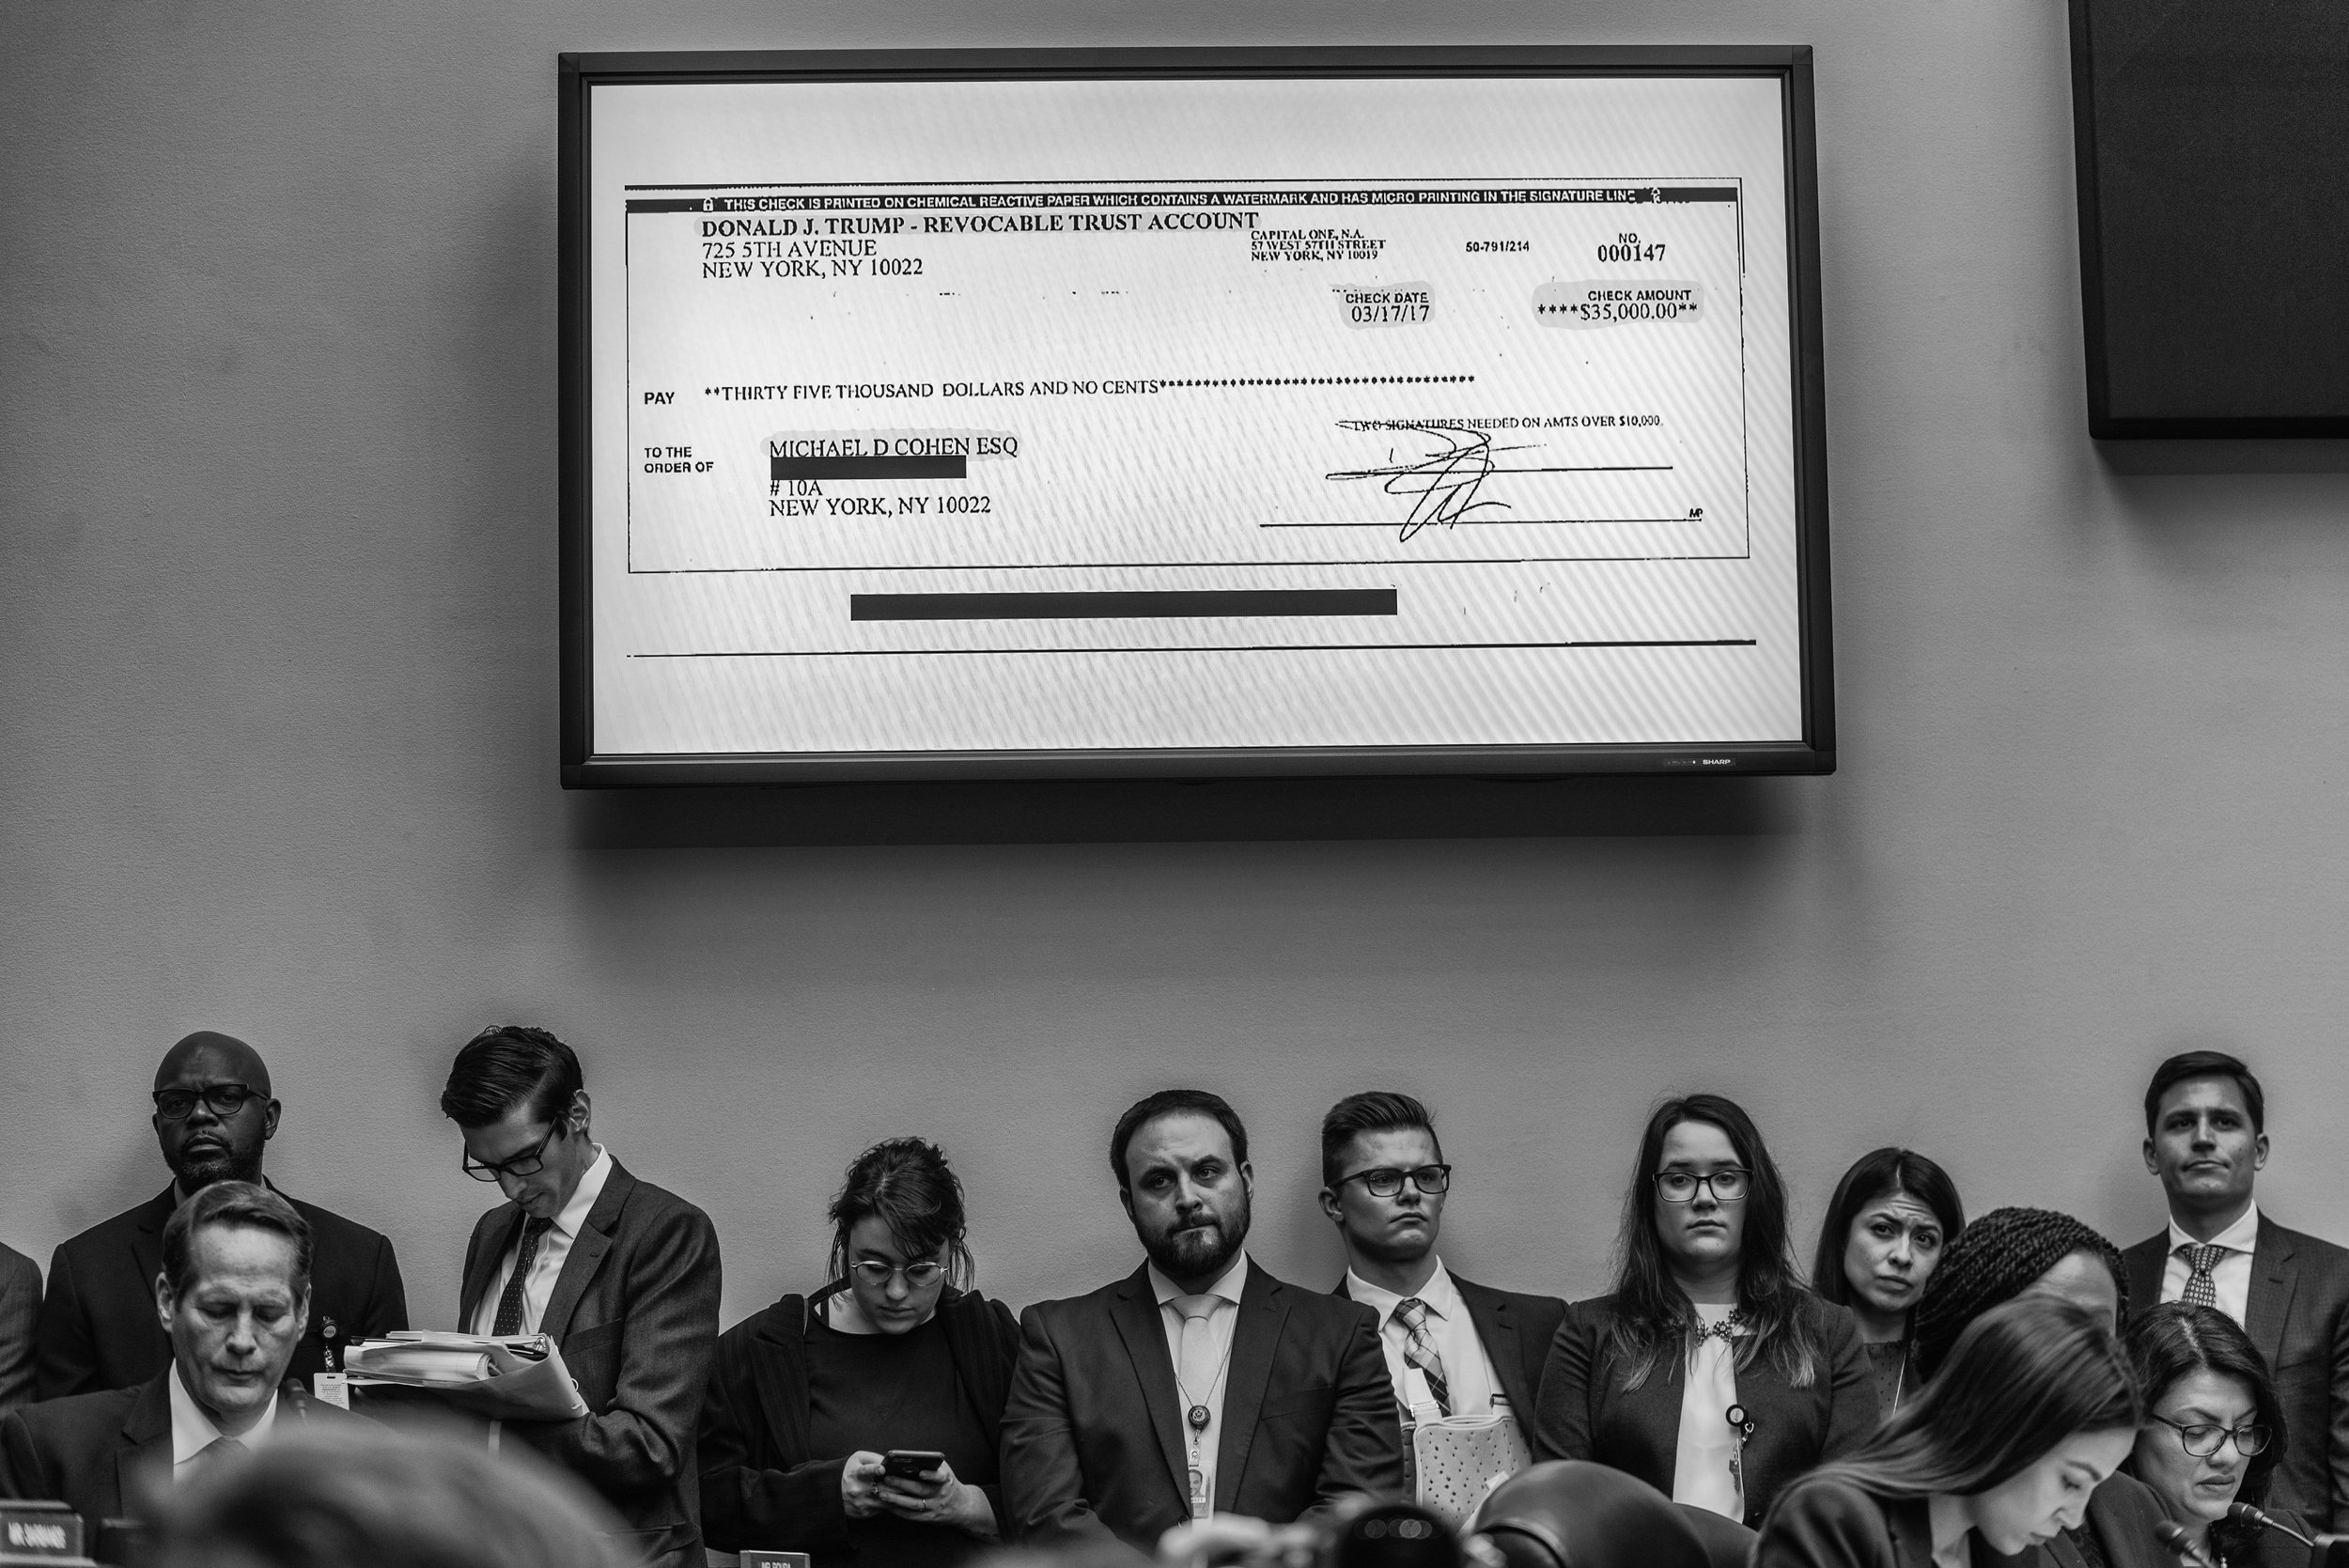 Day 769: The check written to Michael Cohen by President Trump is displayed before the House Committee on Oversight and Reform, in Washington, DC on February 27, 2019.